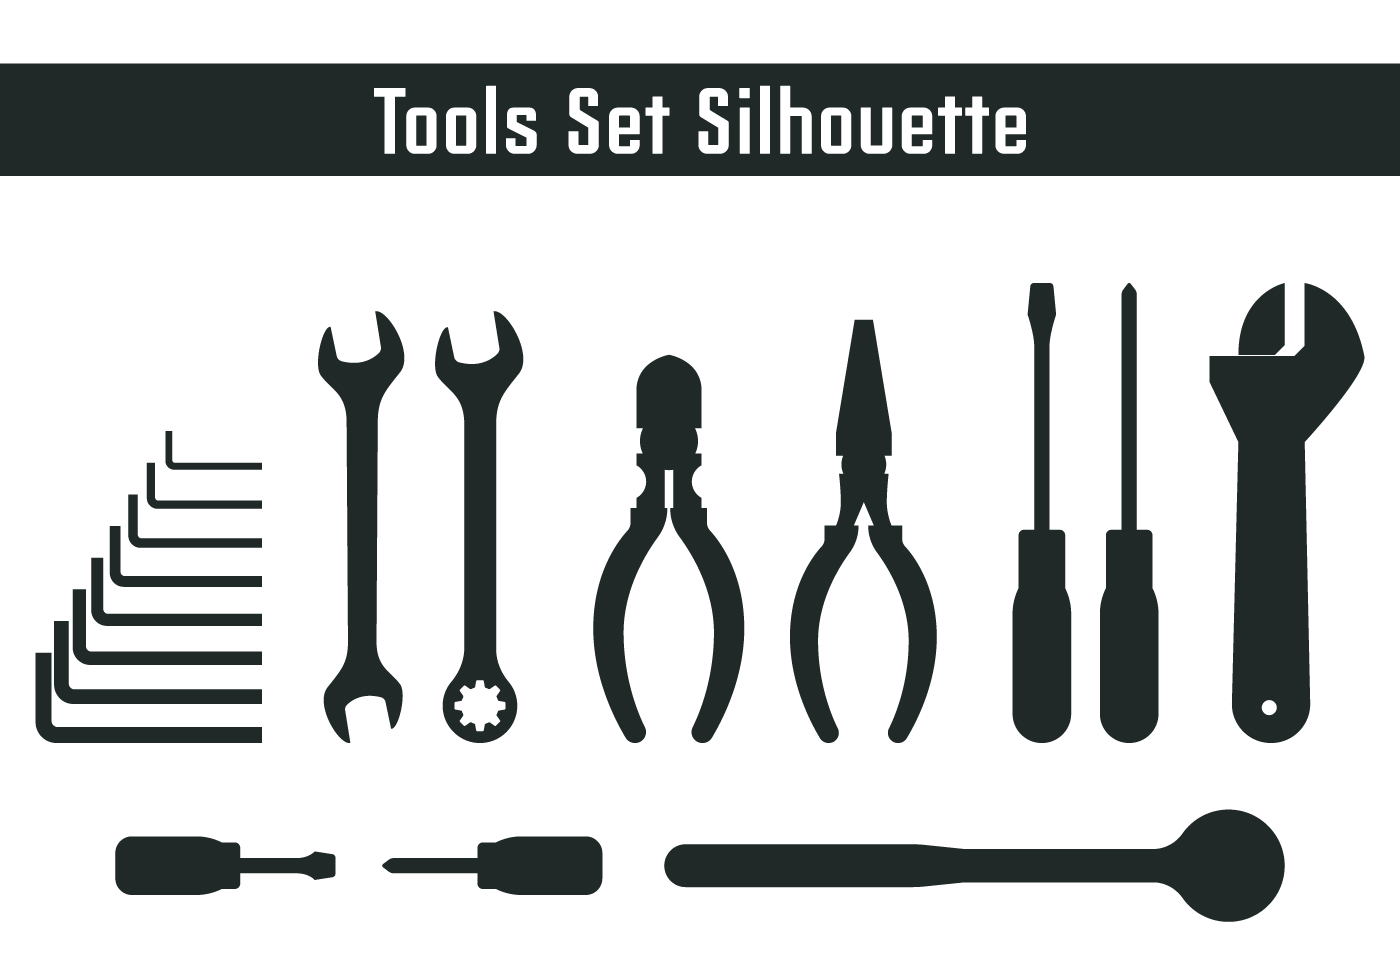 Tools Set Silhouette - Download Free Vector Art, Stock ...